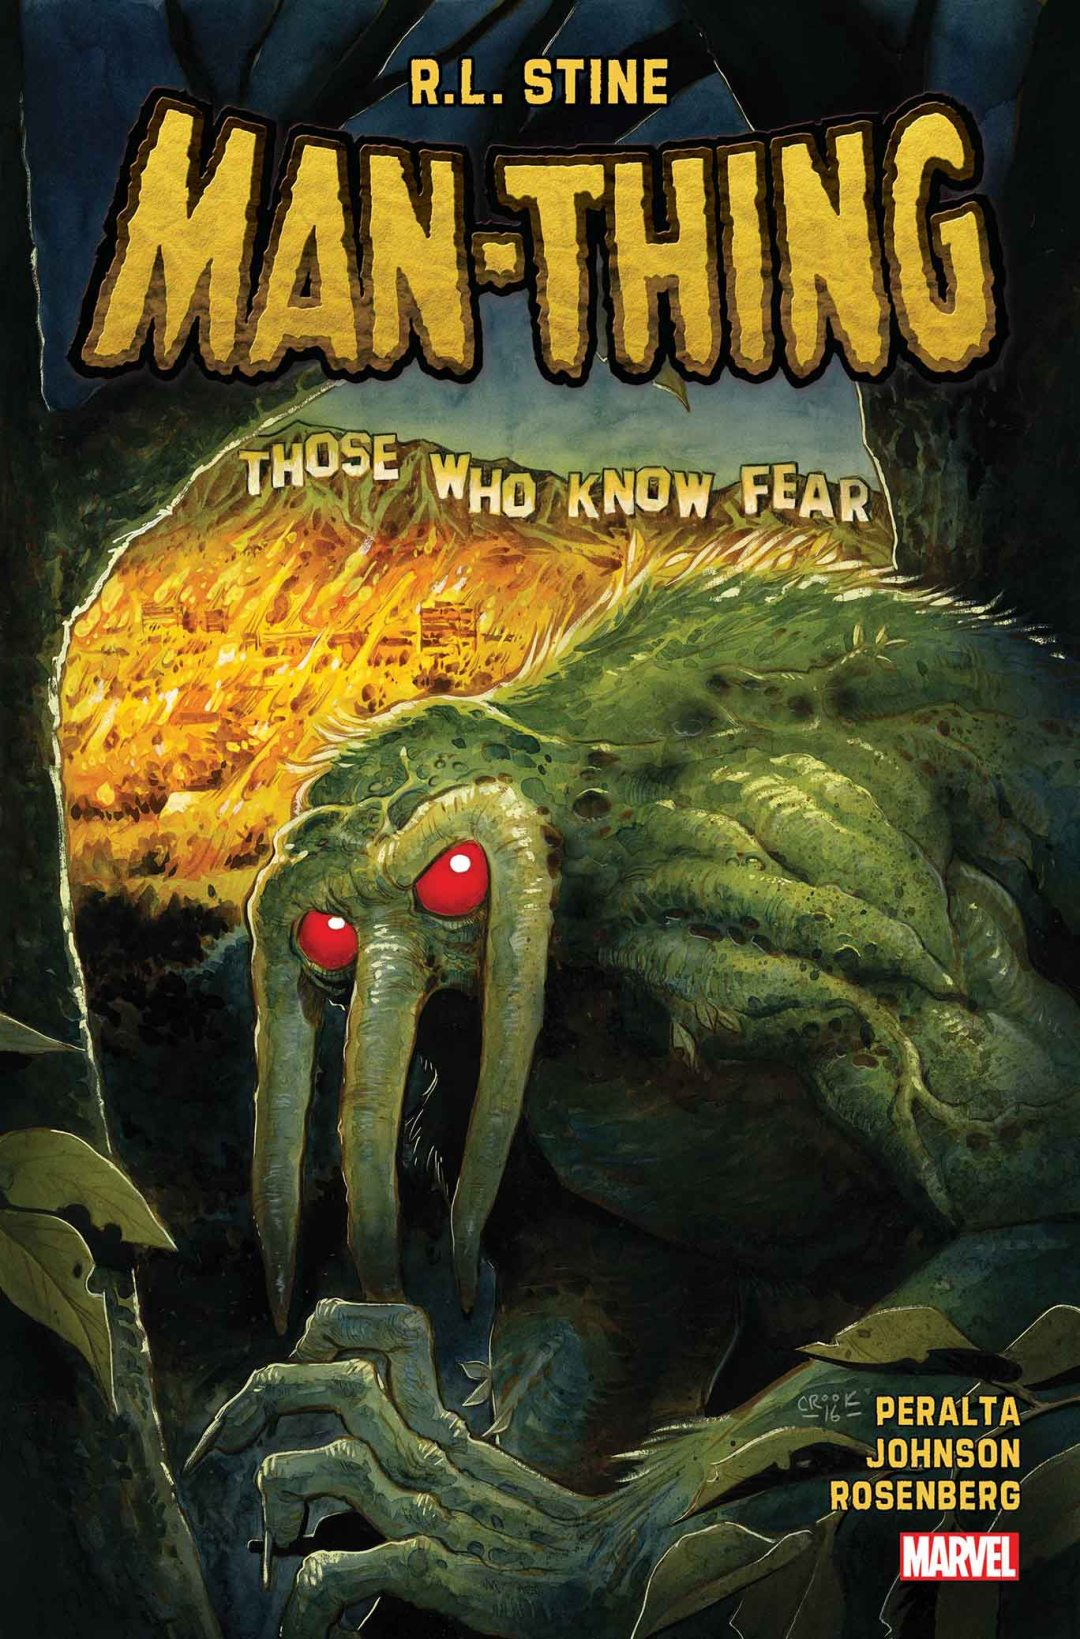 Marvel Comics Welcomes R.L. Stine to Helm New 'MAN-THING' Series!